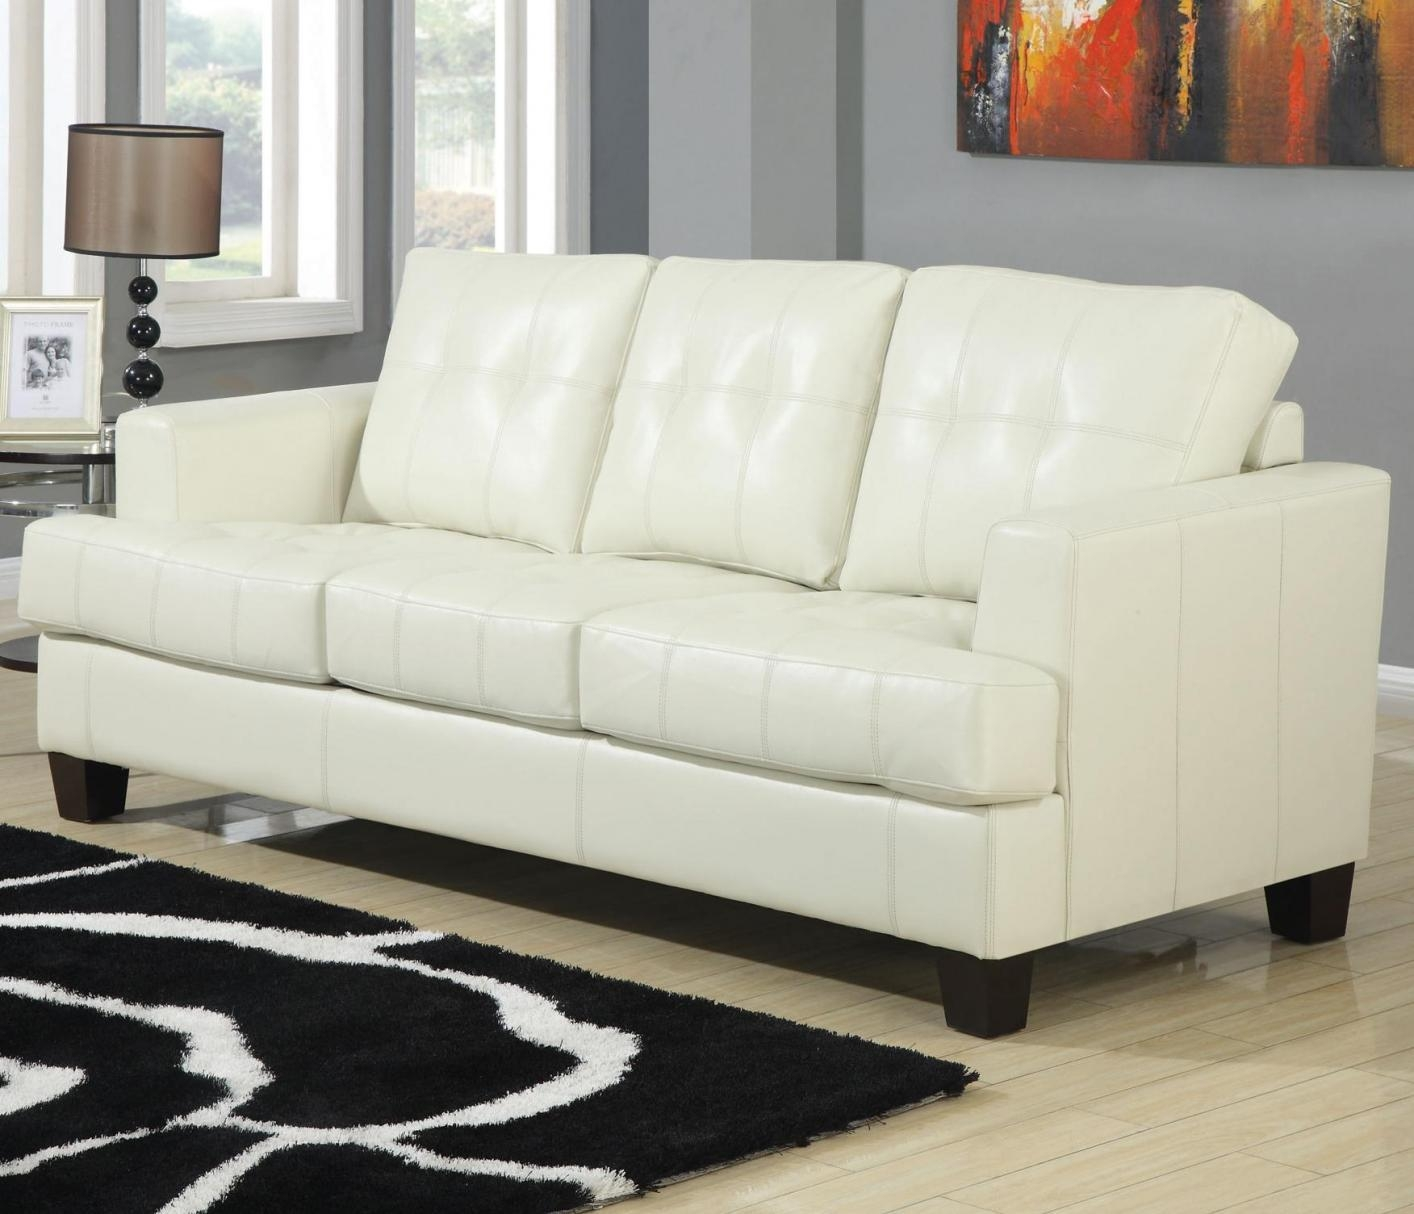 Samuel Beige Leather Sofa Bed – Steal A Sofa Furniture Outlet Los In Beige Leather Couches (Image 20 of 20)